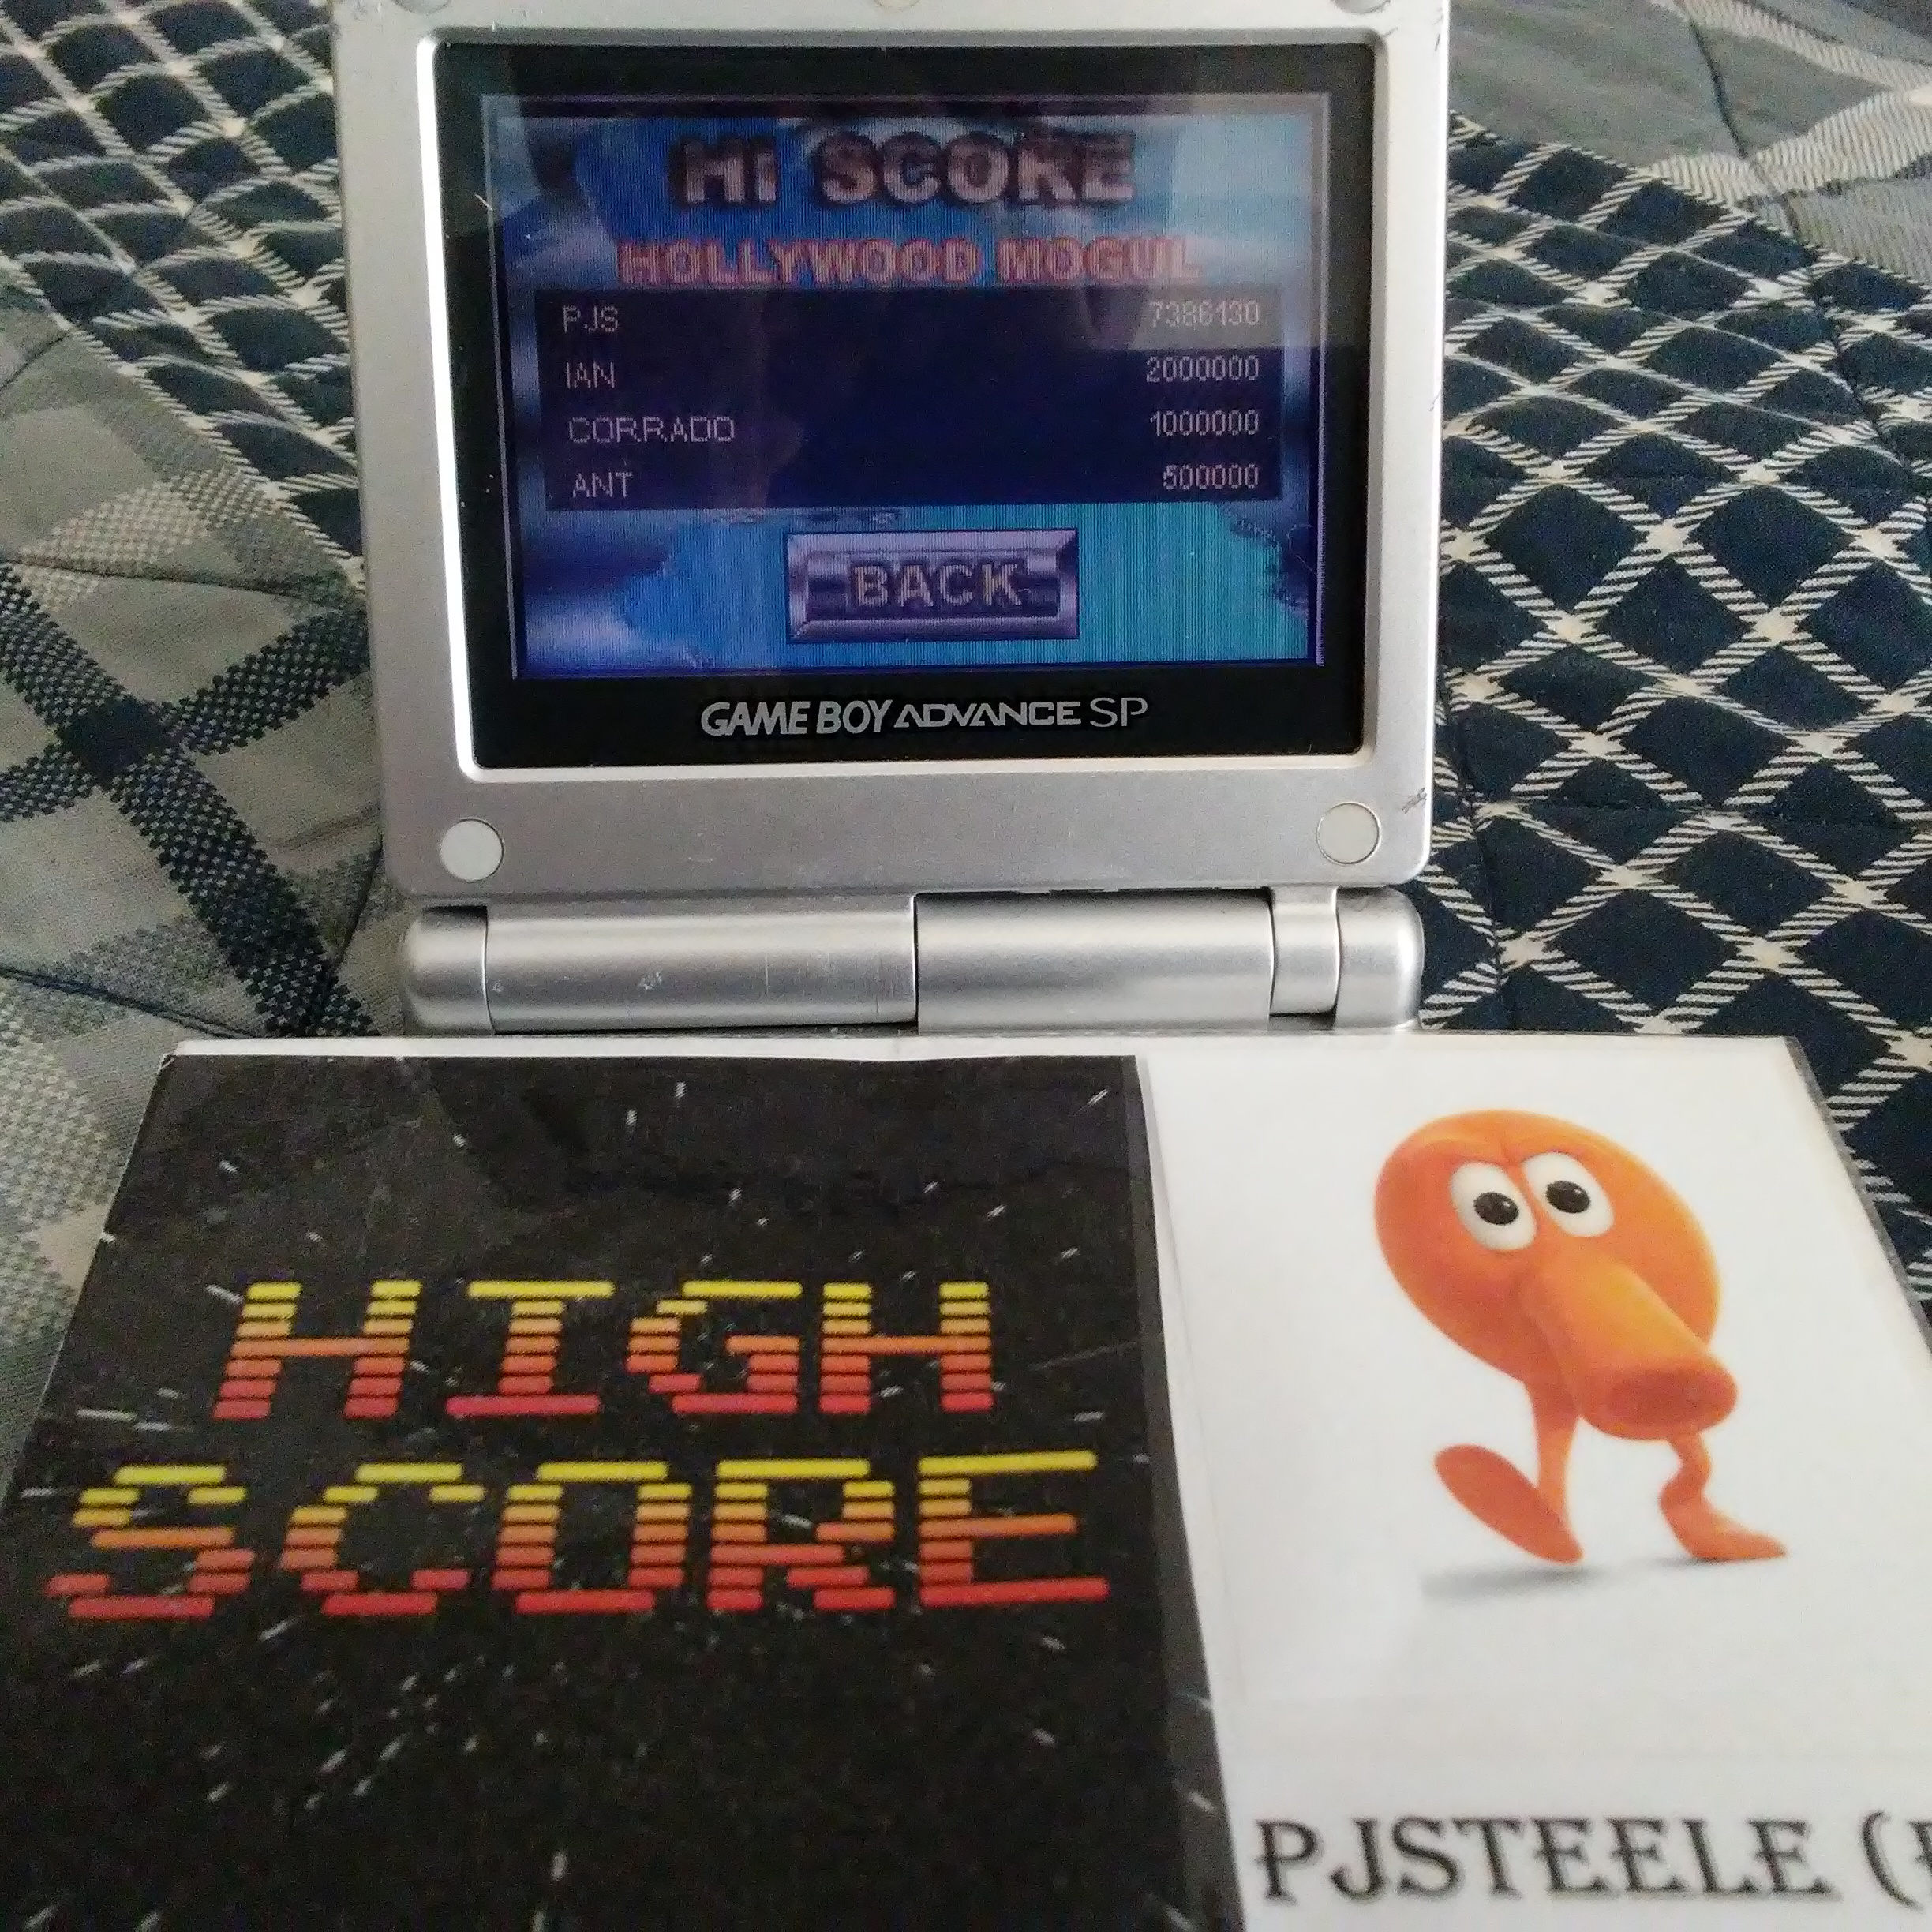 Pjsteele: Pinball Tycoon: Hollywood Mogul (GBA) 7,386,130 points on 2017-06-23 16:58:41